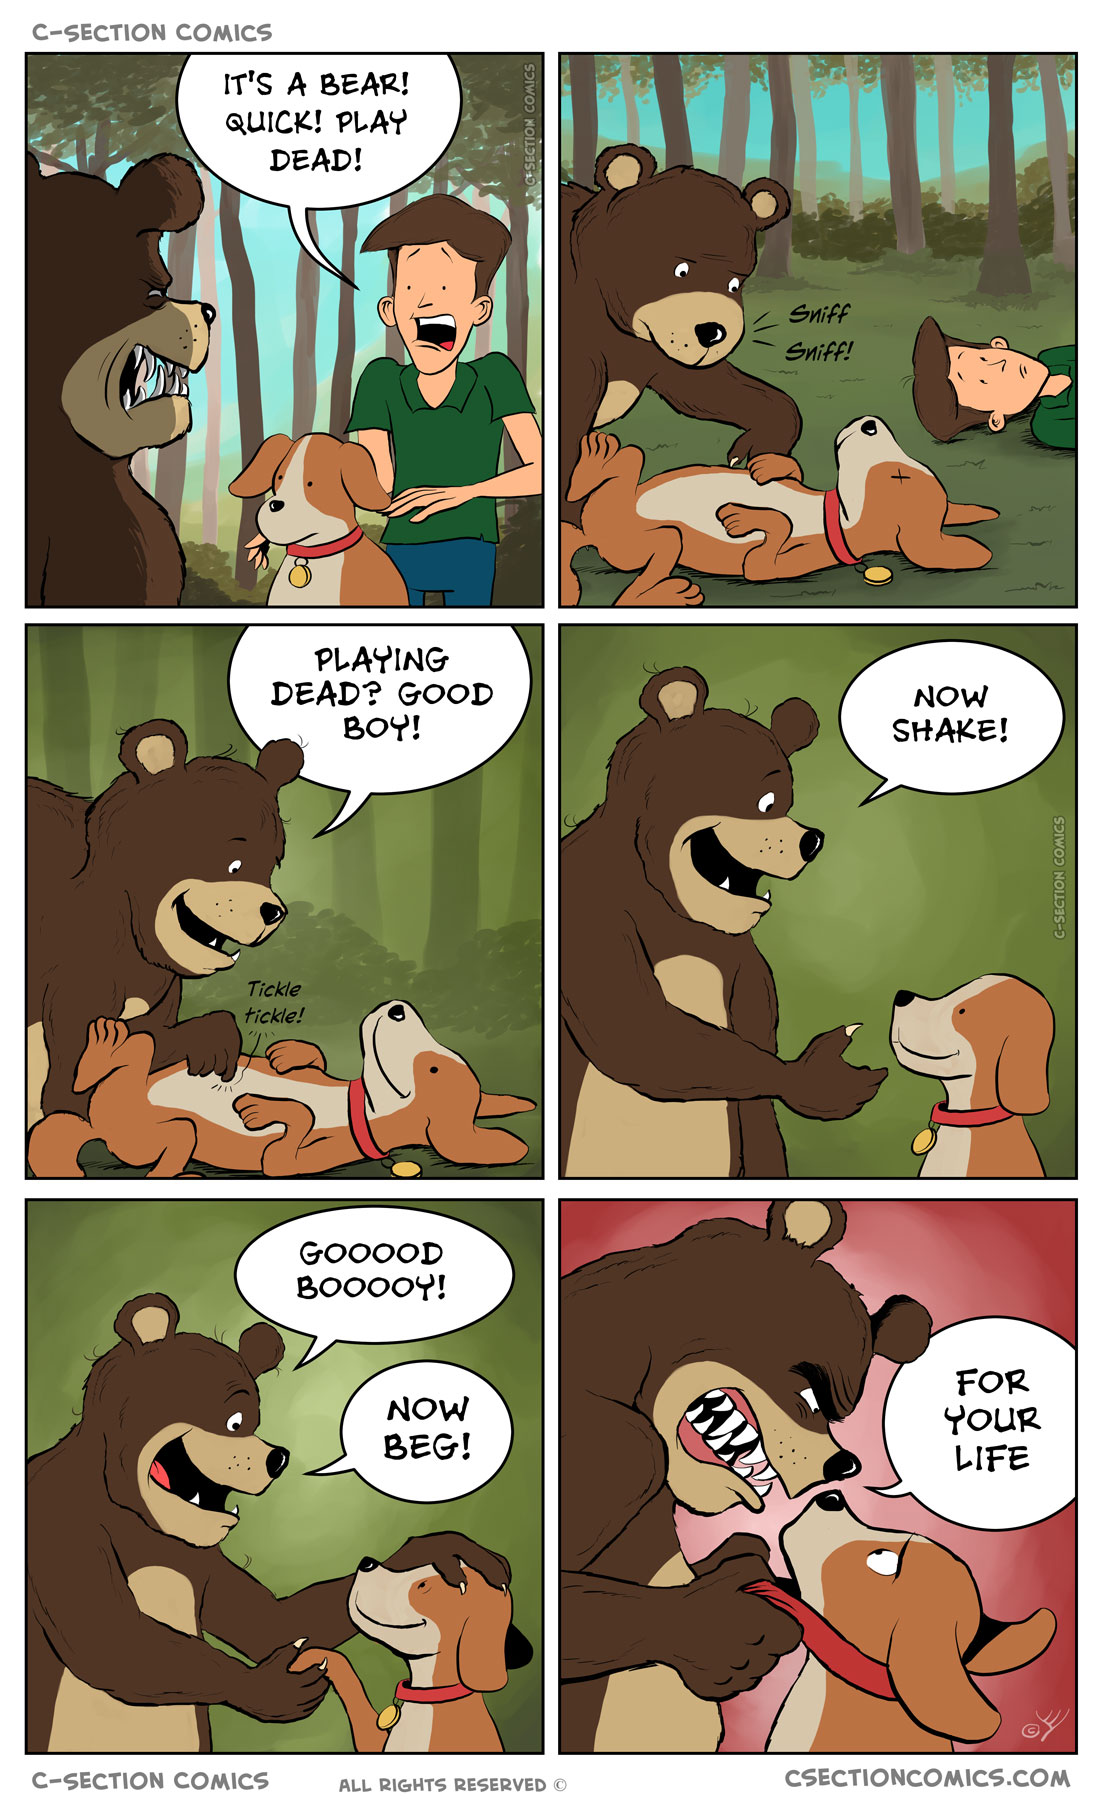 Drawing this comic was... un-bear-ably ruff  ----- ***(+5000 for DOUBLE PUN, LEVEL UP)***